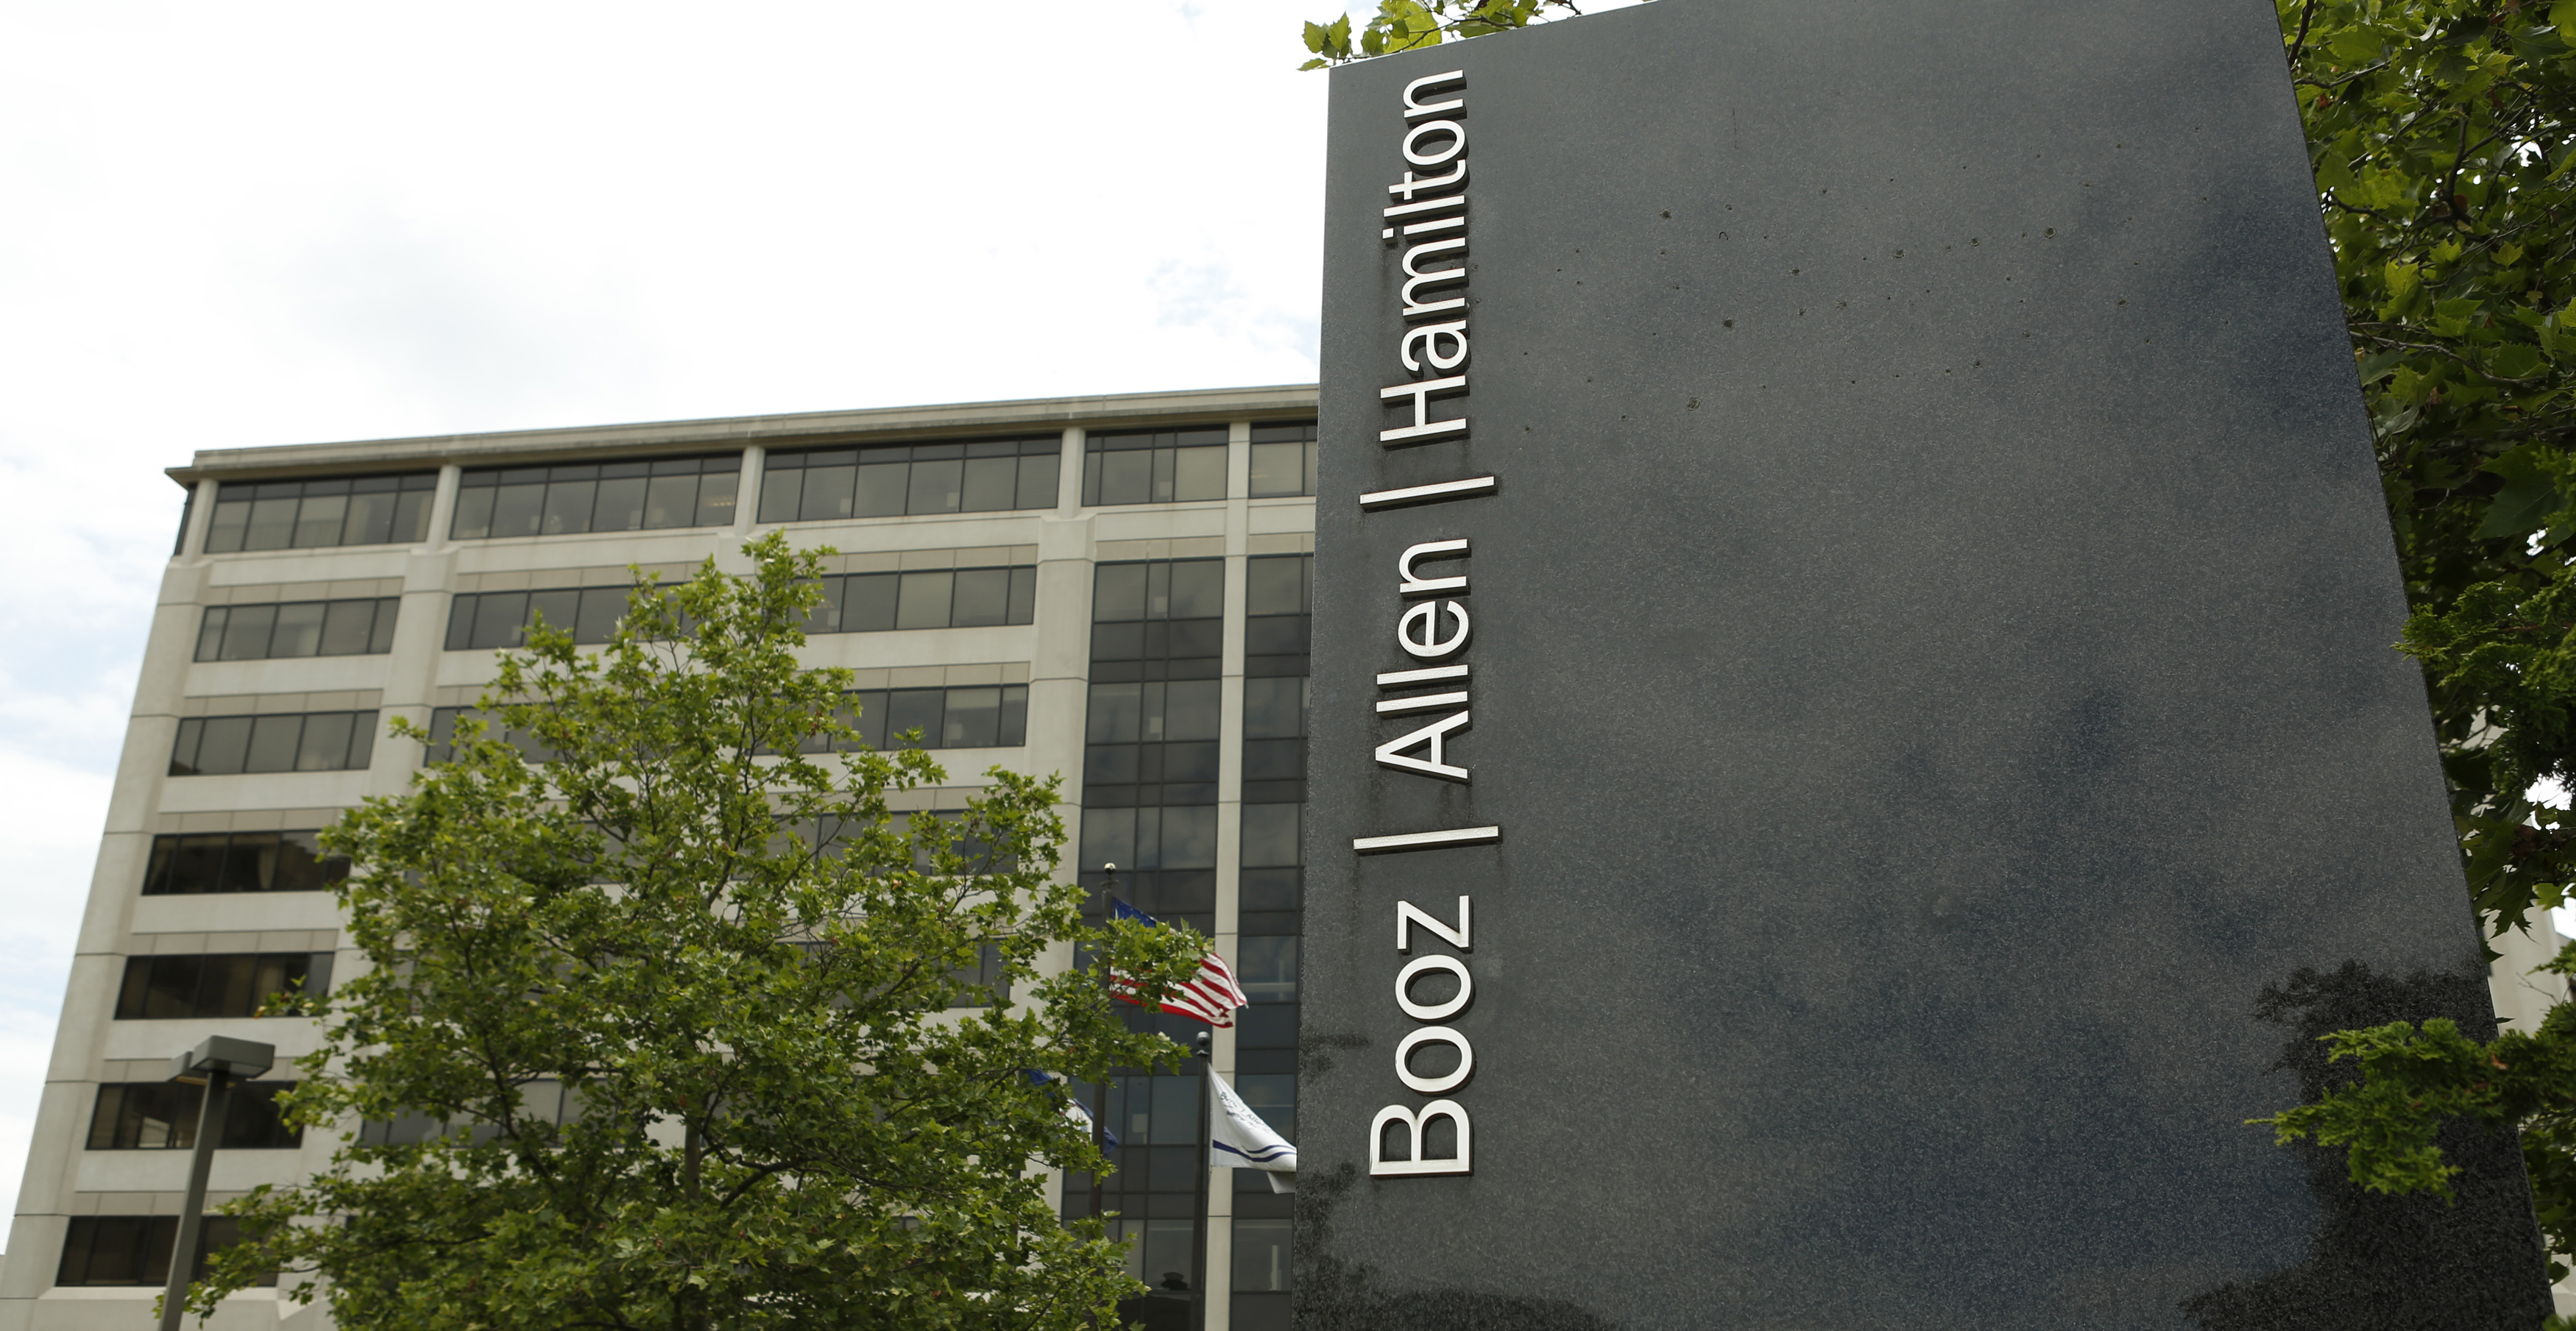 The Booz Allen Hamilton Holding Corp office building in McLean, Virginia, June 11, 2013